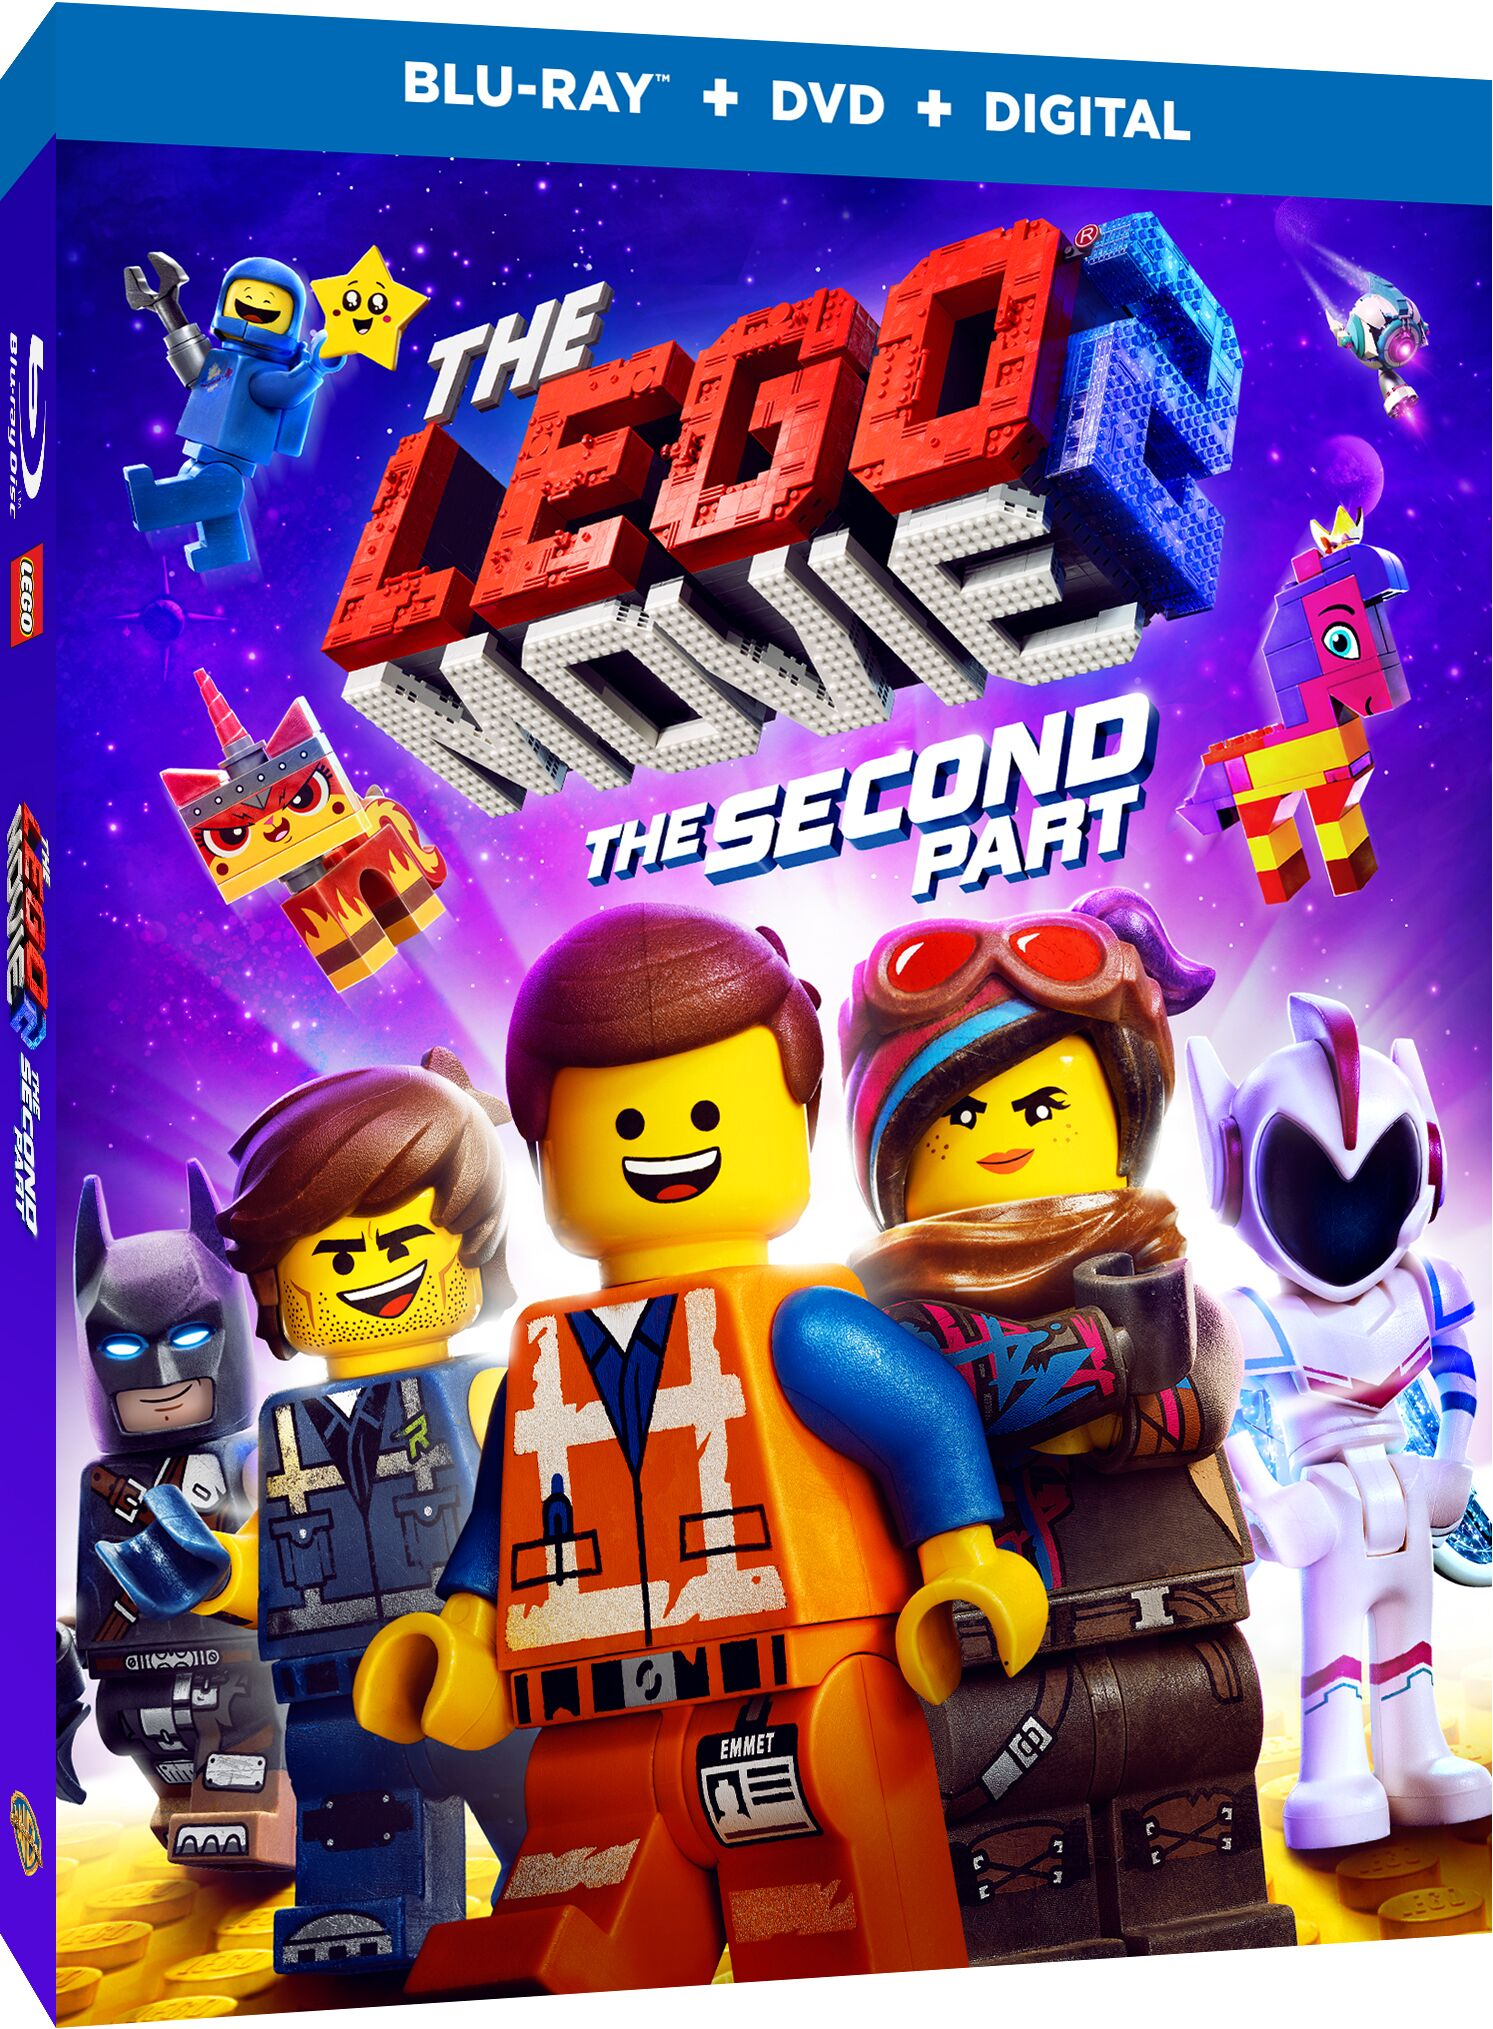 the-lego-movie-2 Blu-ray